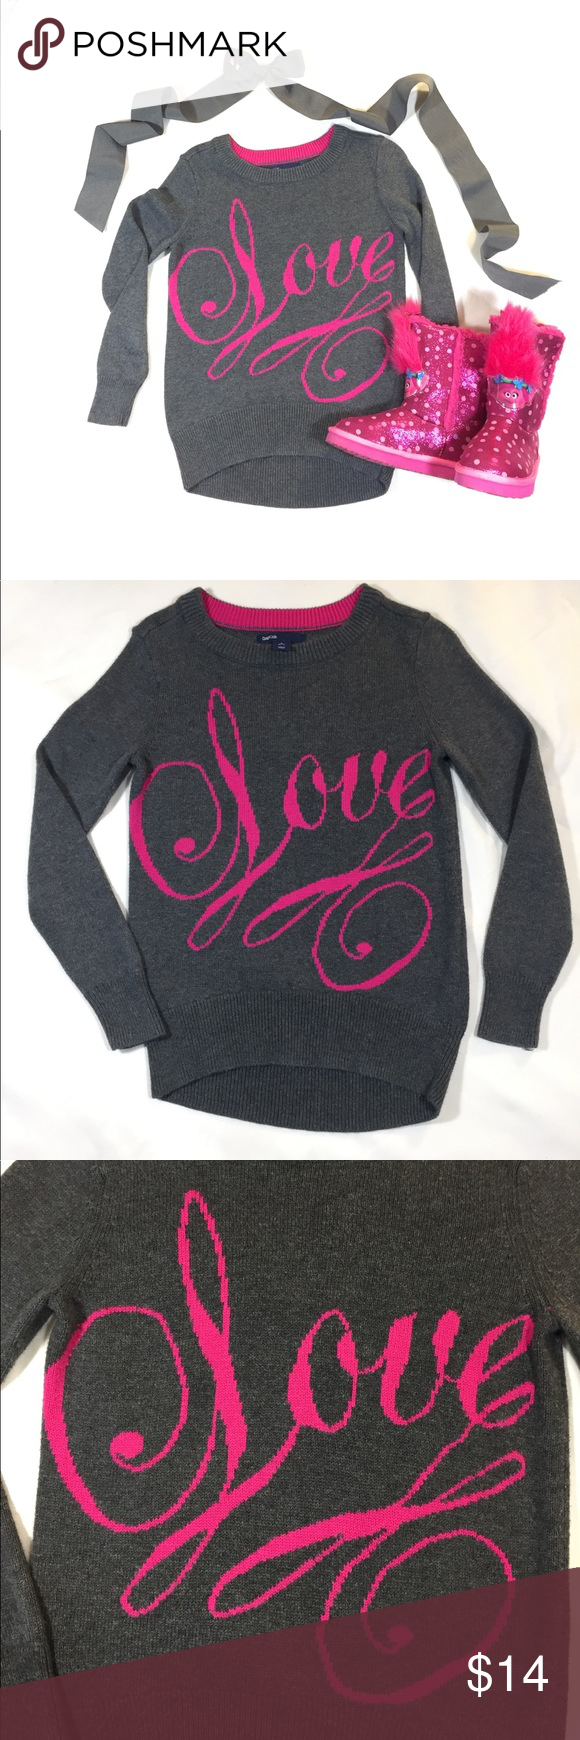 SOLD~ Gap Kids Love Sweater Size S (6-7) | Gap kids